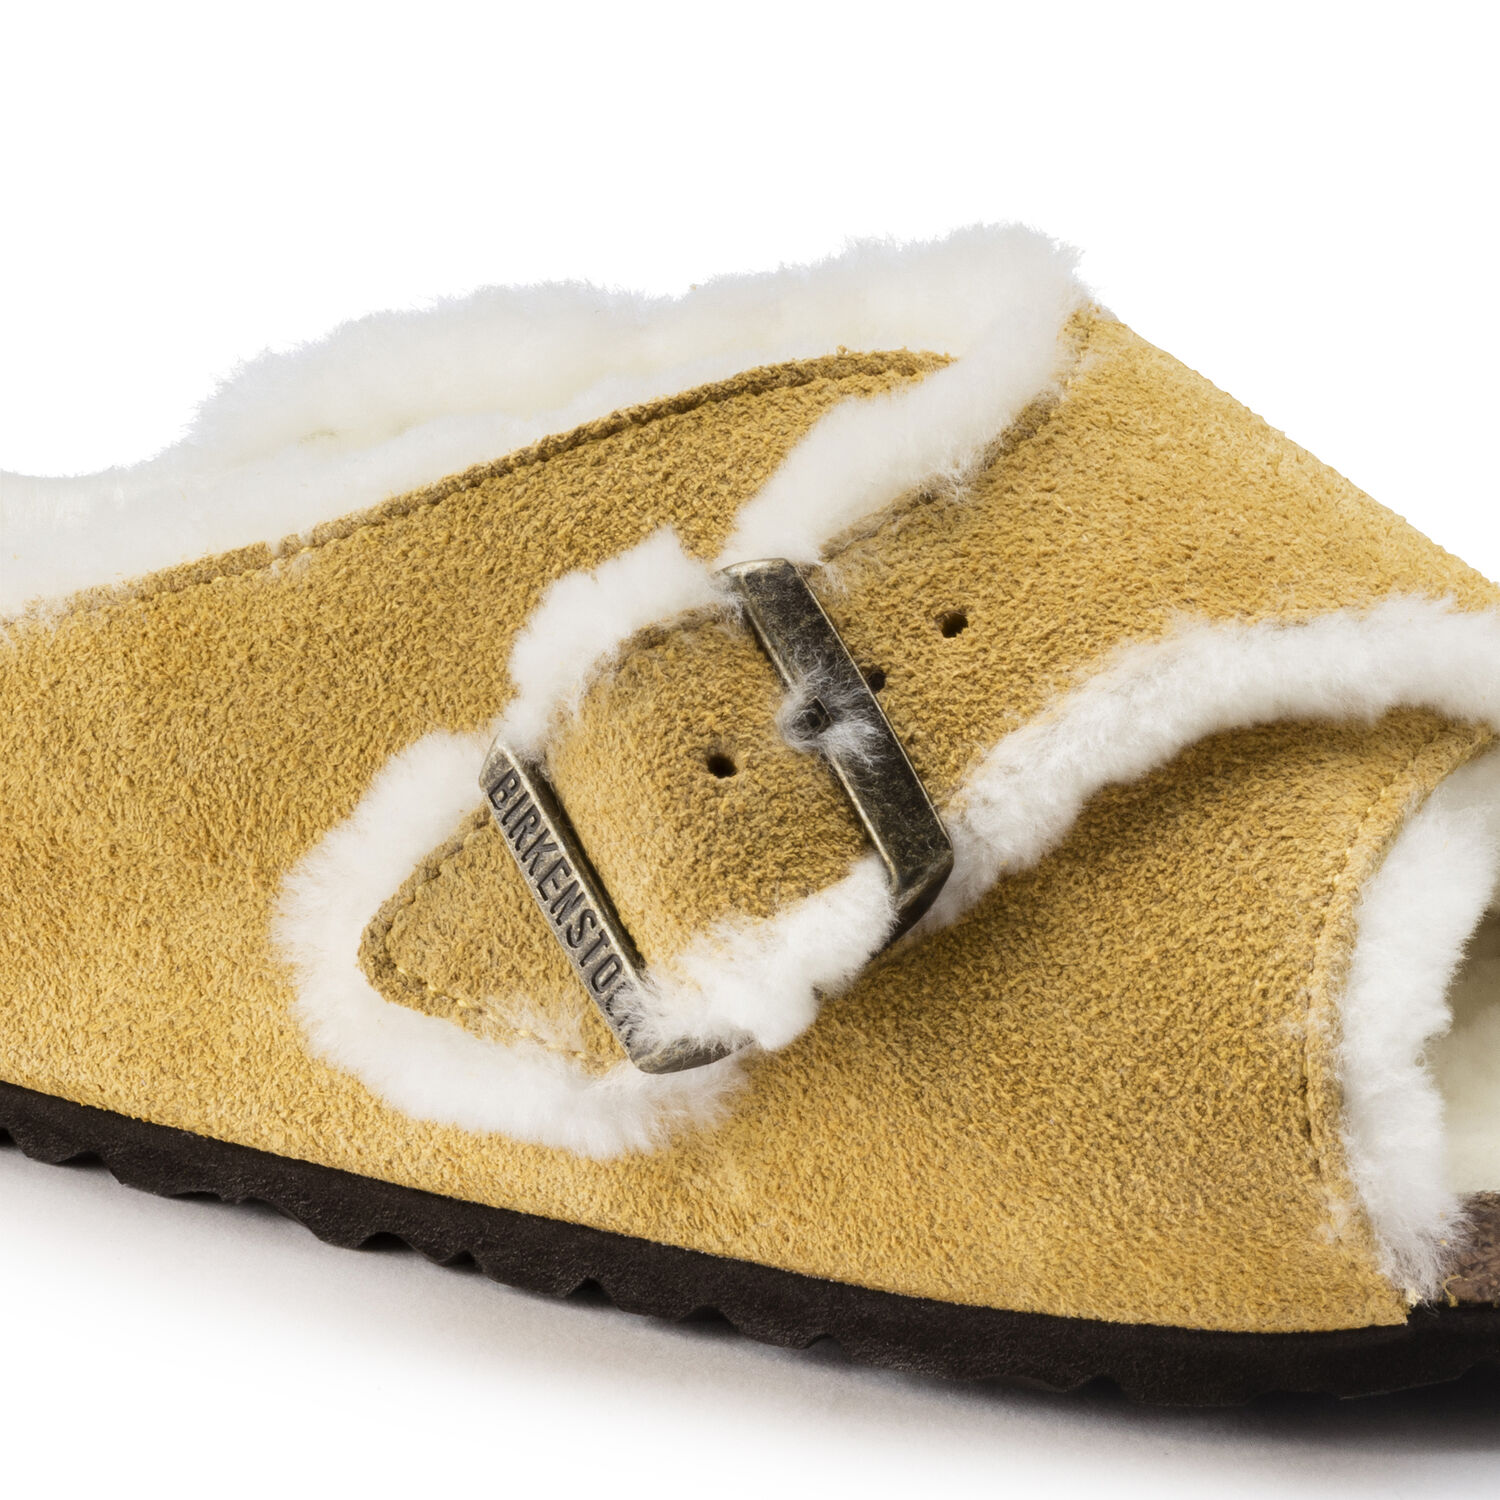 Arosa Shearling Suede Leather